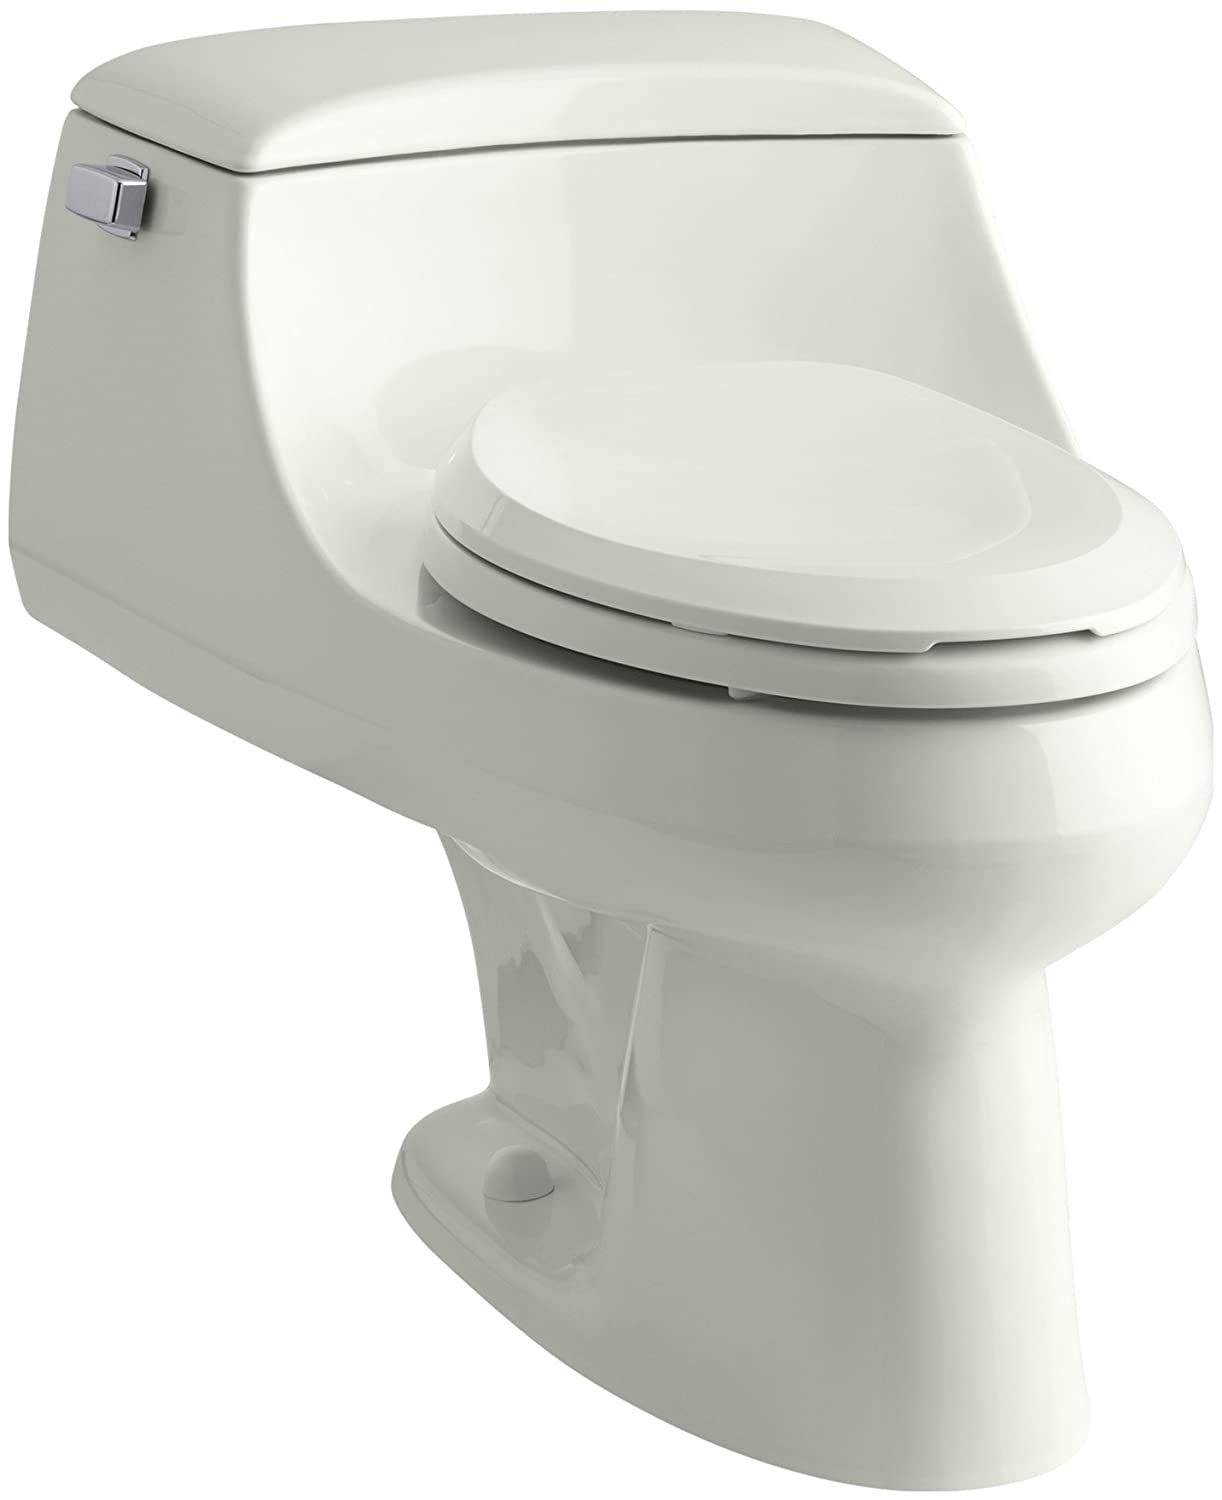 KOHLER K346633 San Raphael OnePiece Elongated Toilet Mexican